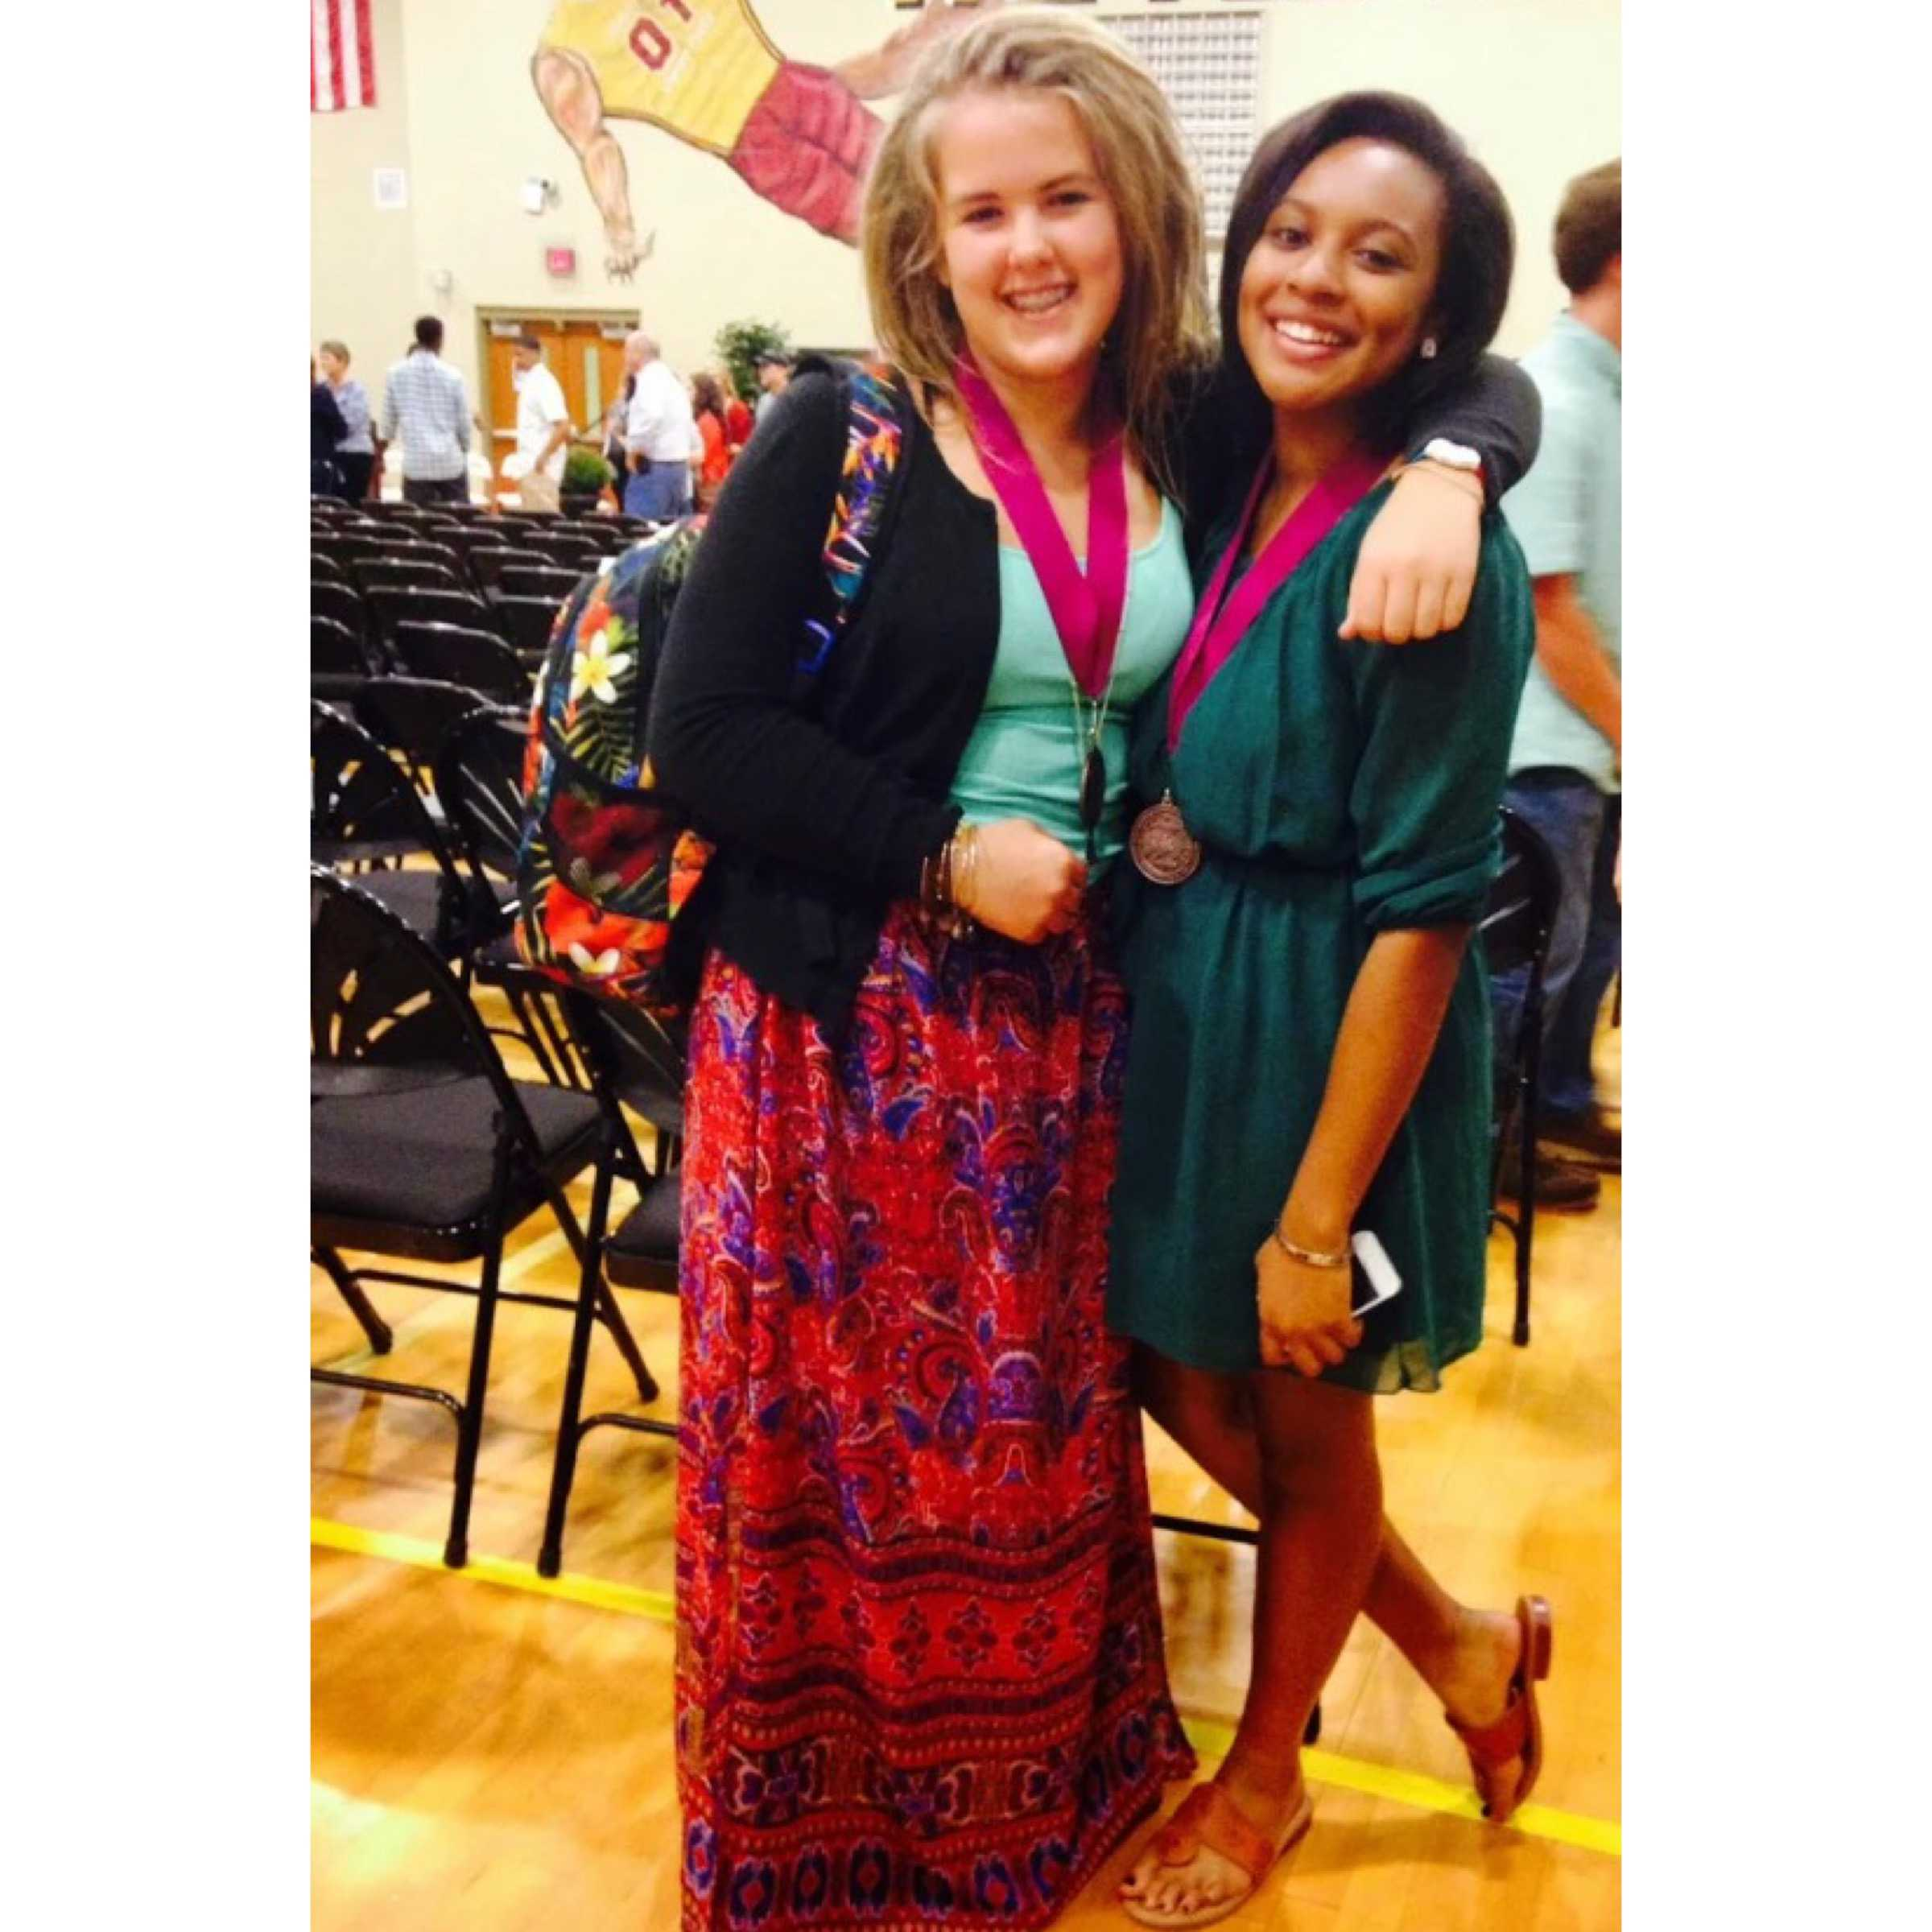 Juniors Jayla Ball and Abby Sellers at the 2014 Academic Award Ceremony